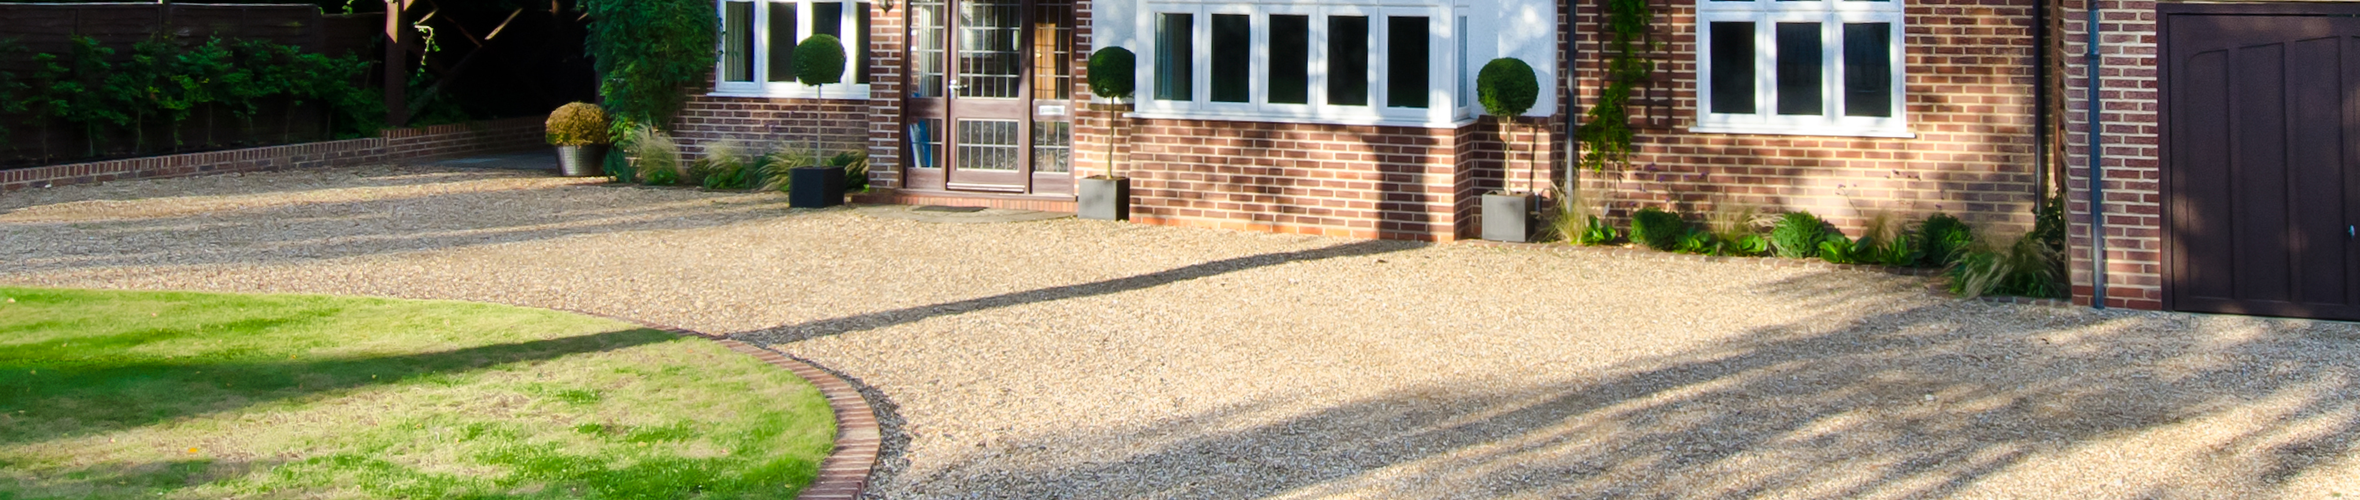 Gardens Driveways Amp Landscaping By Direct Driveways Essex